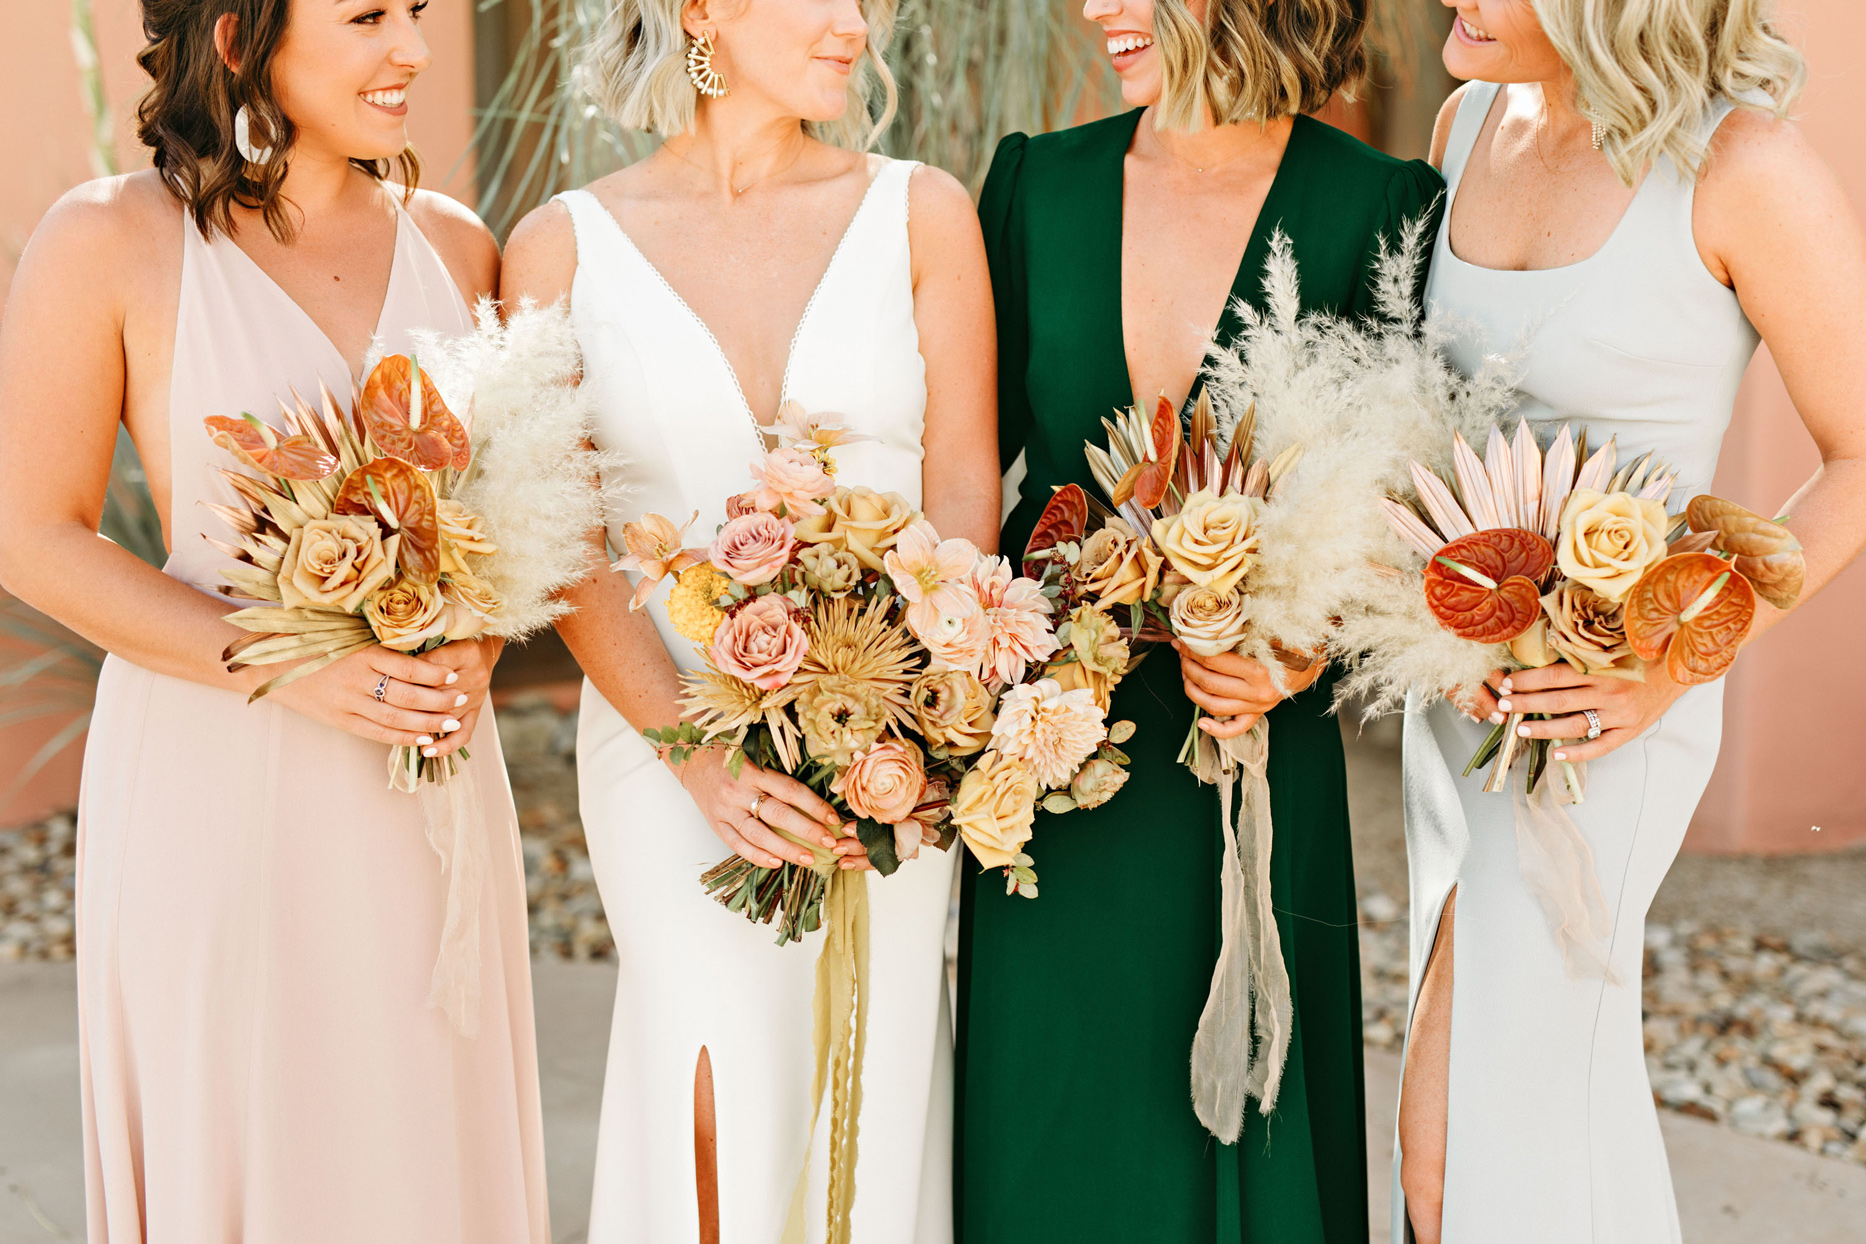 bride and bridal party holding gold and rose bouquets